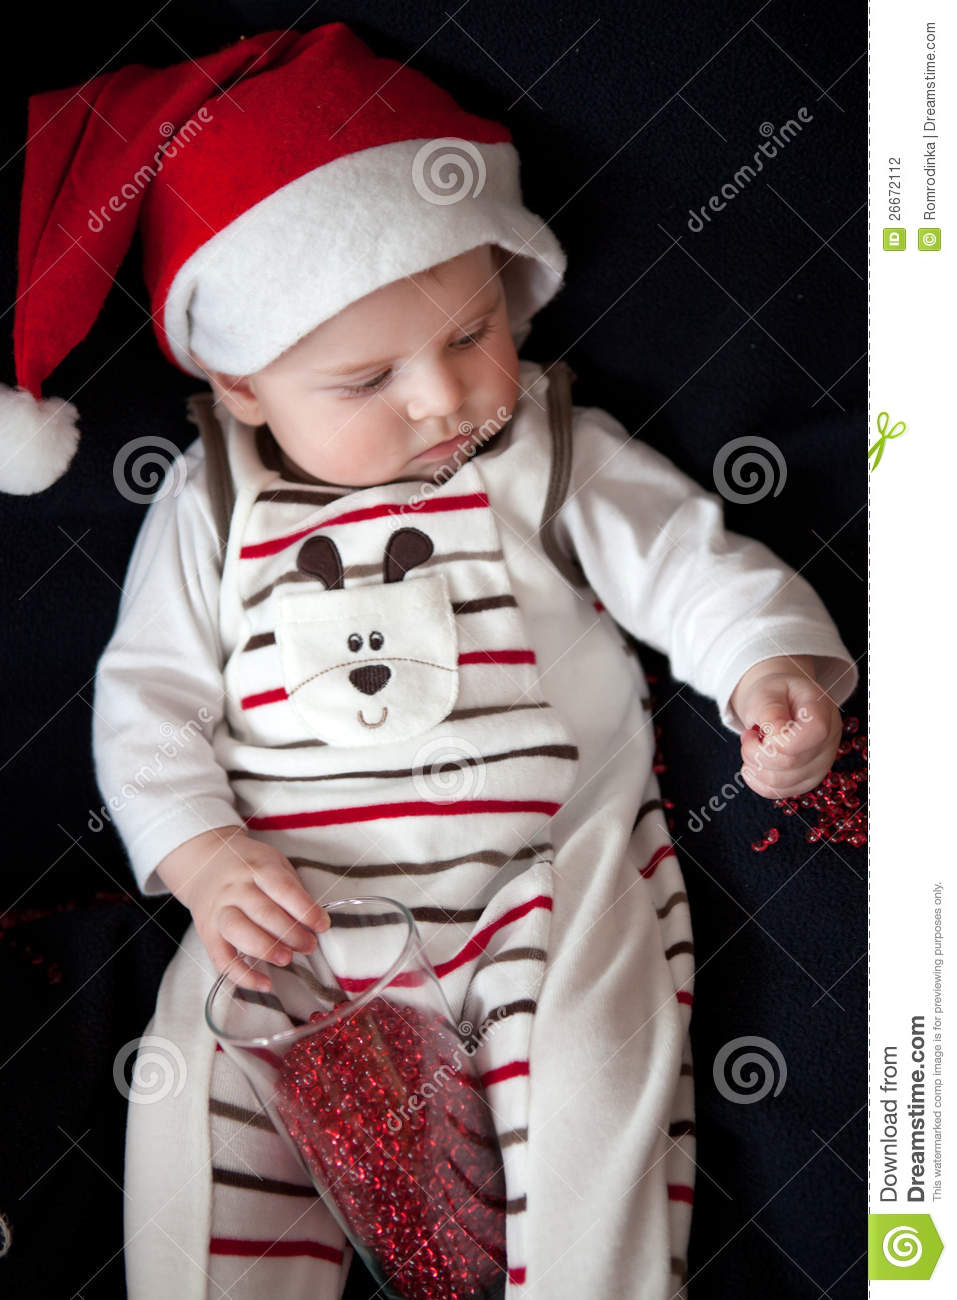 a558441a172 Adorable Baby Boy With Christmas Cap Stock Photo - Image of portrait ...